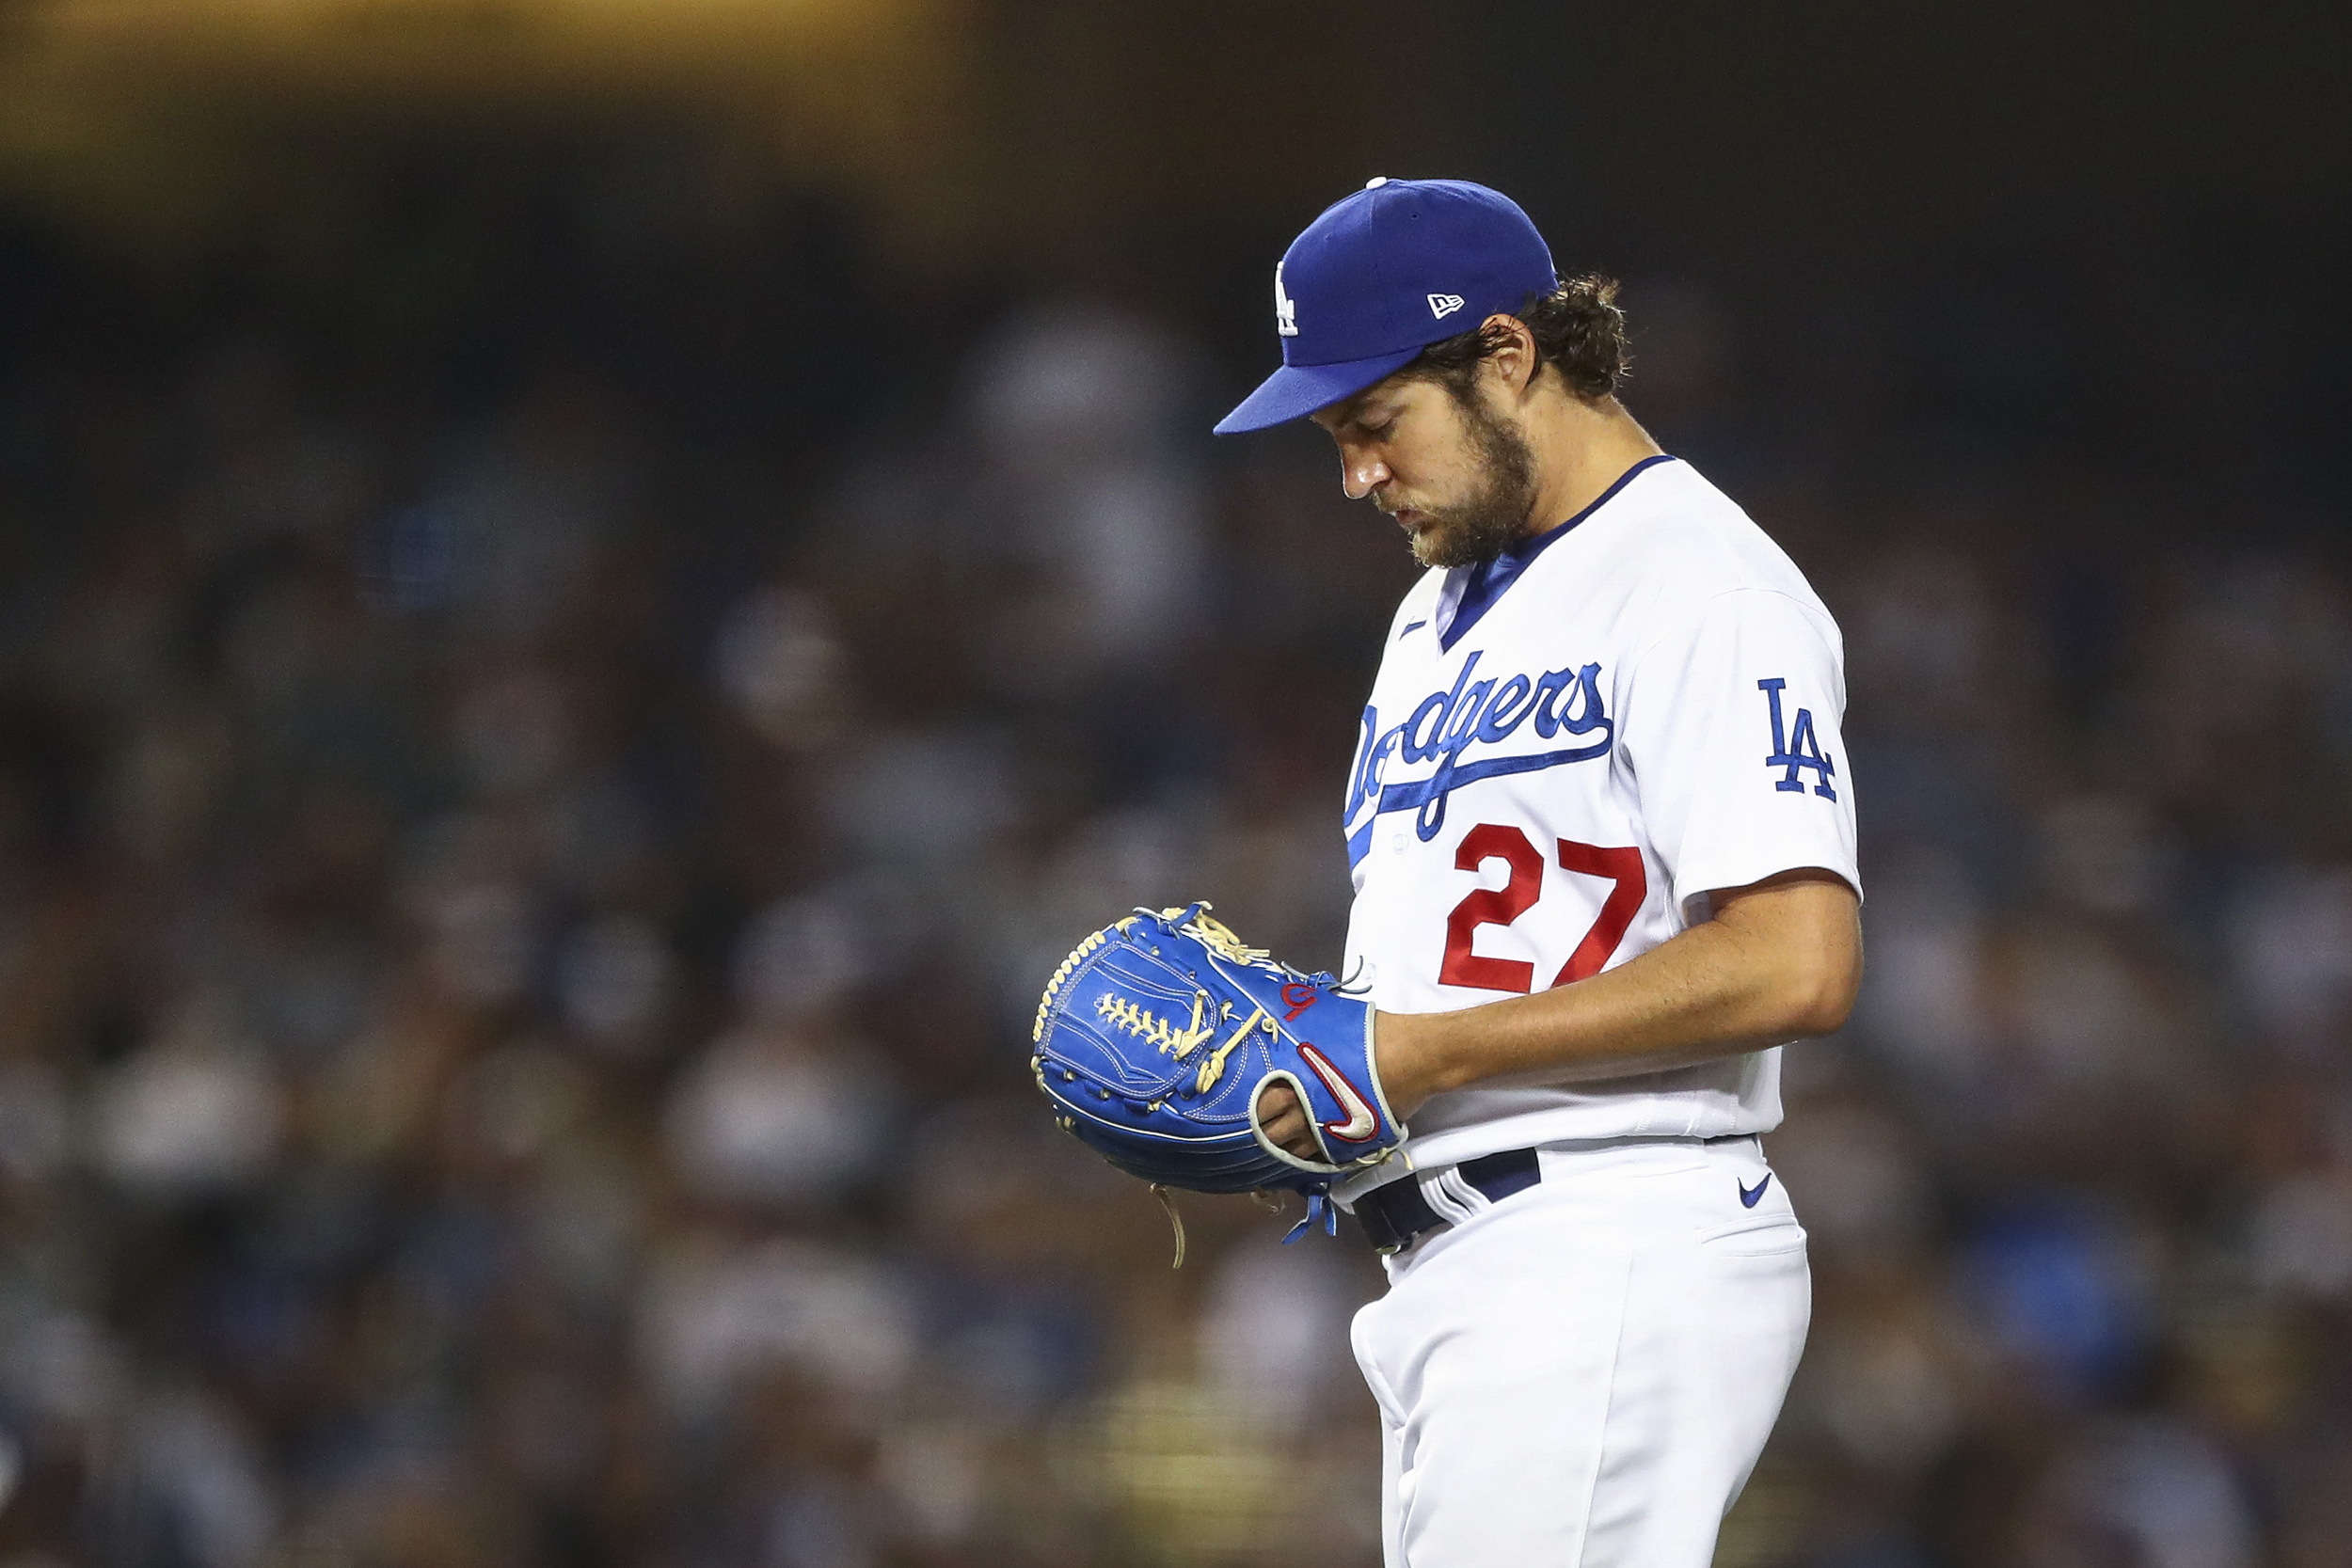 Dodgers' Trevor Bauer to miss rest of season due to MLB sexual assault investigation